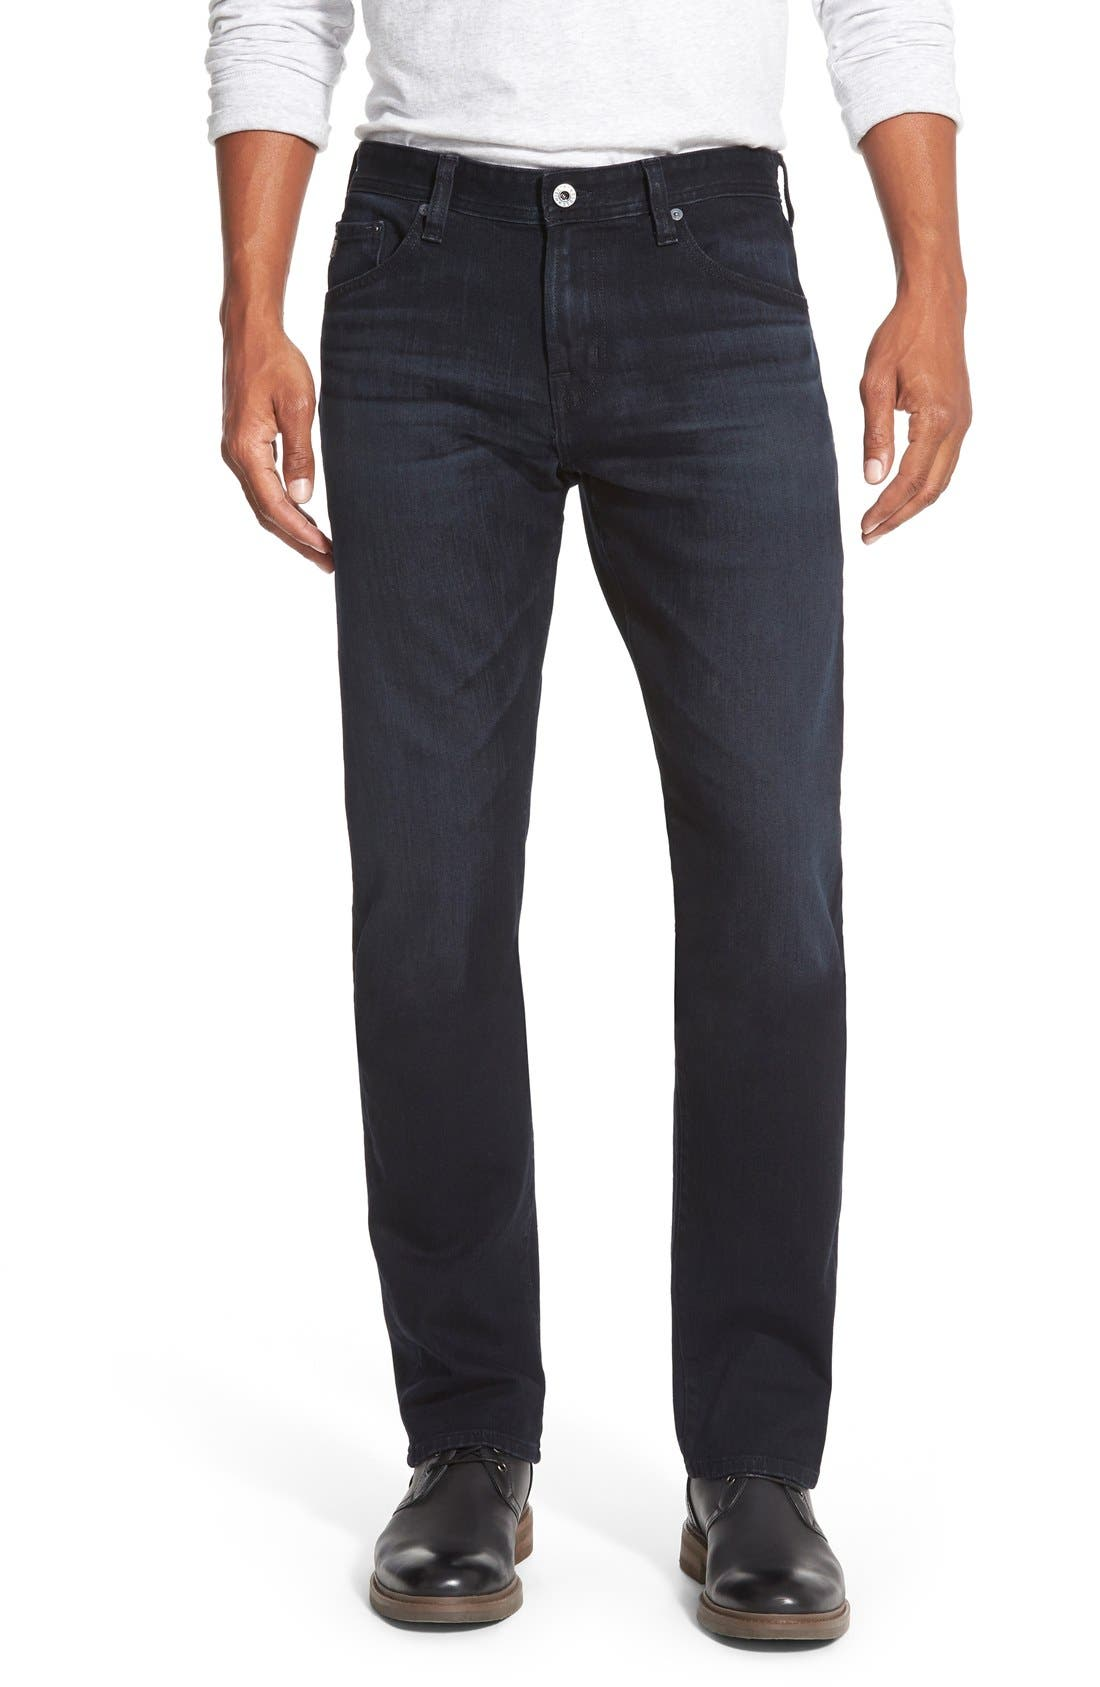 Alternate Image 1 Selected - AG Graduate Slim Straight Leg Jeans (Bundled)